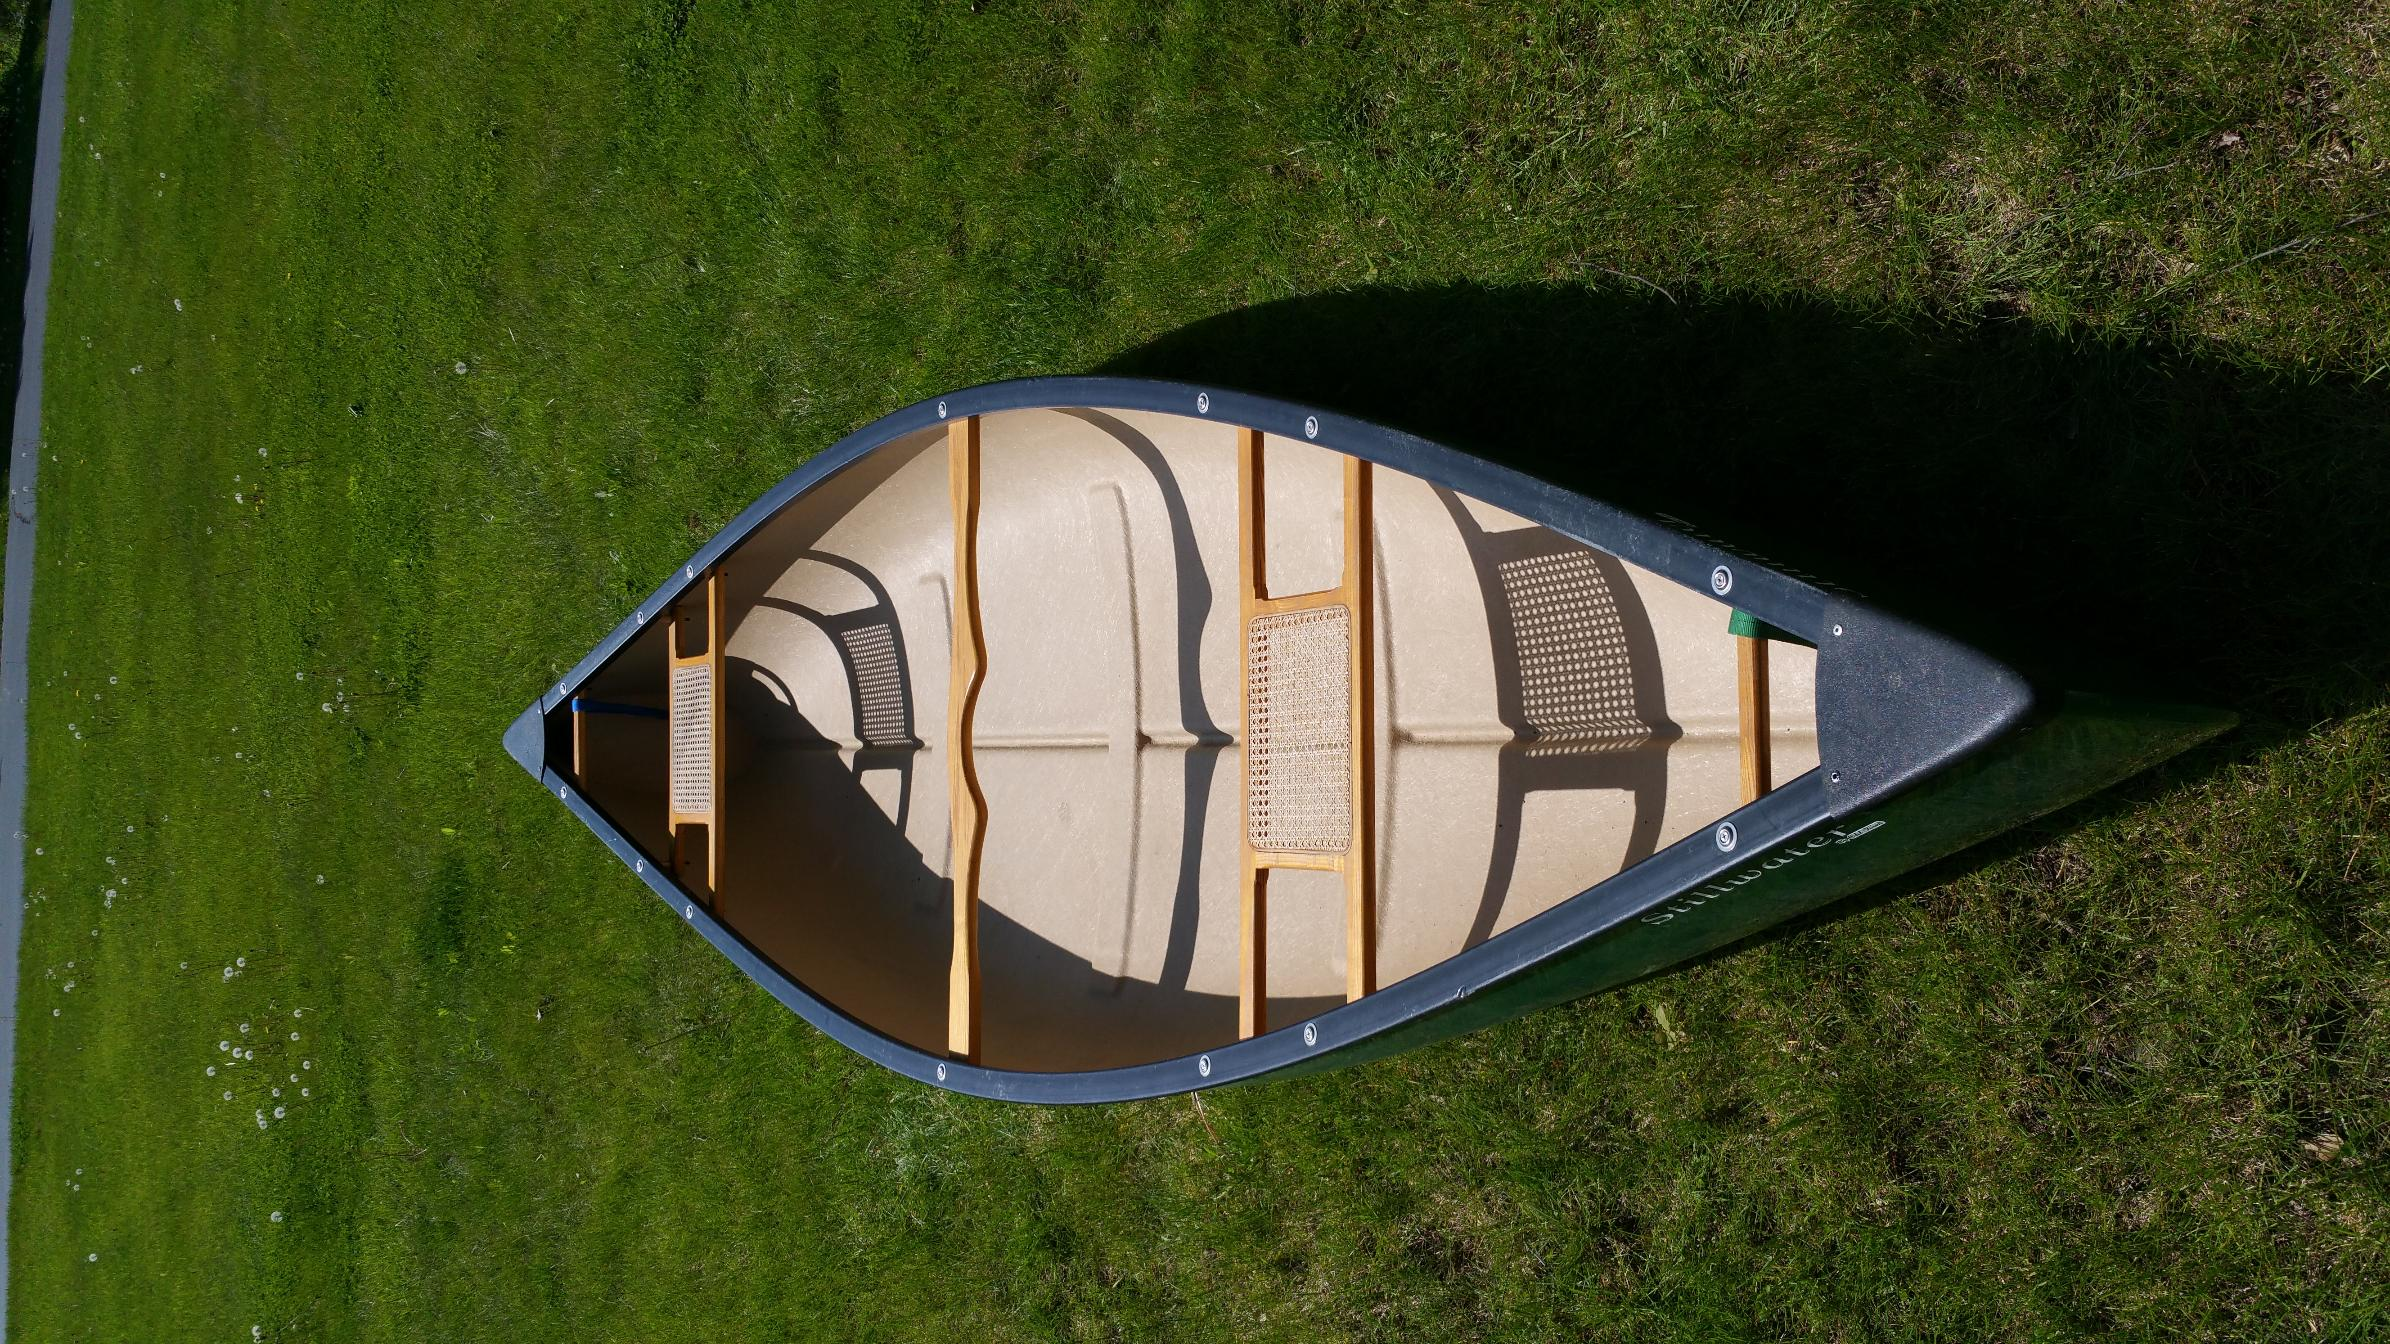 Bwca Old Town Stillwater 12 Canoe For Sale 400 00